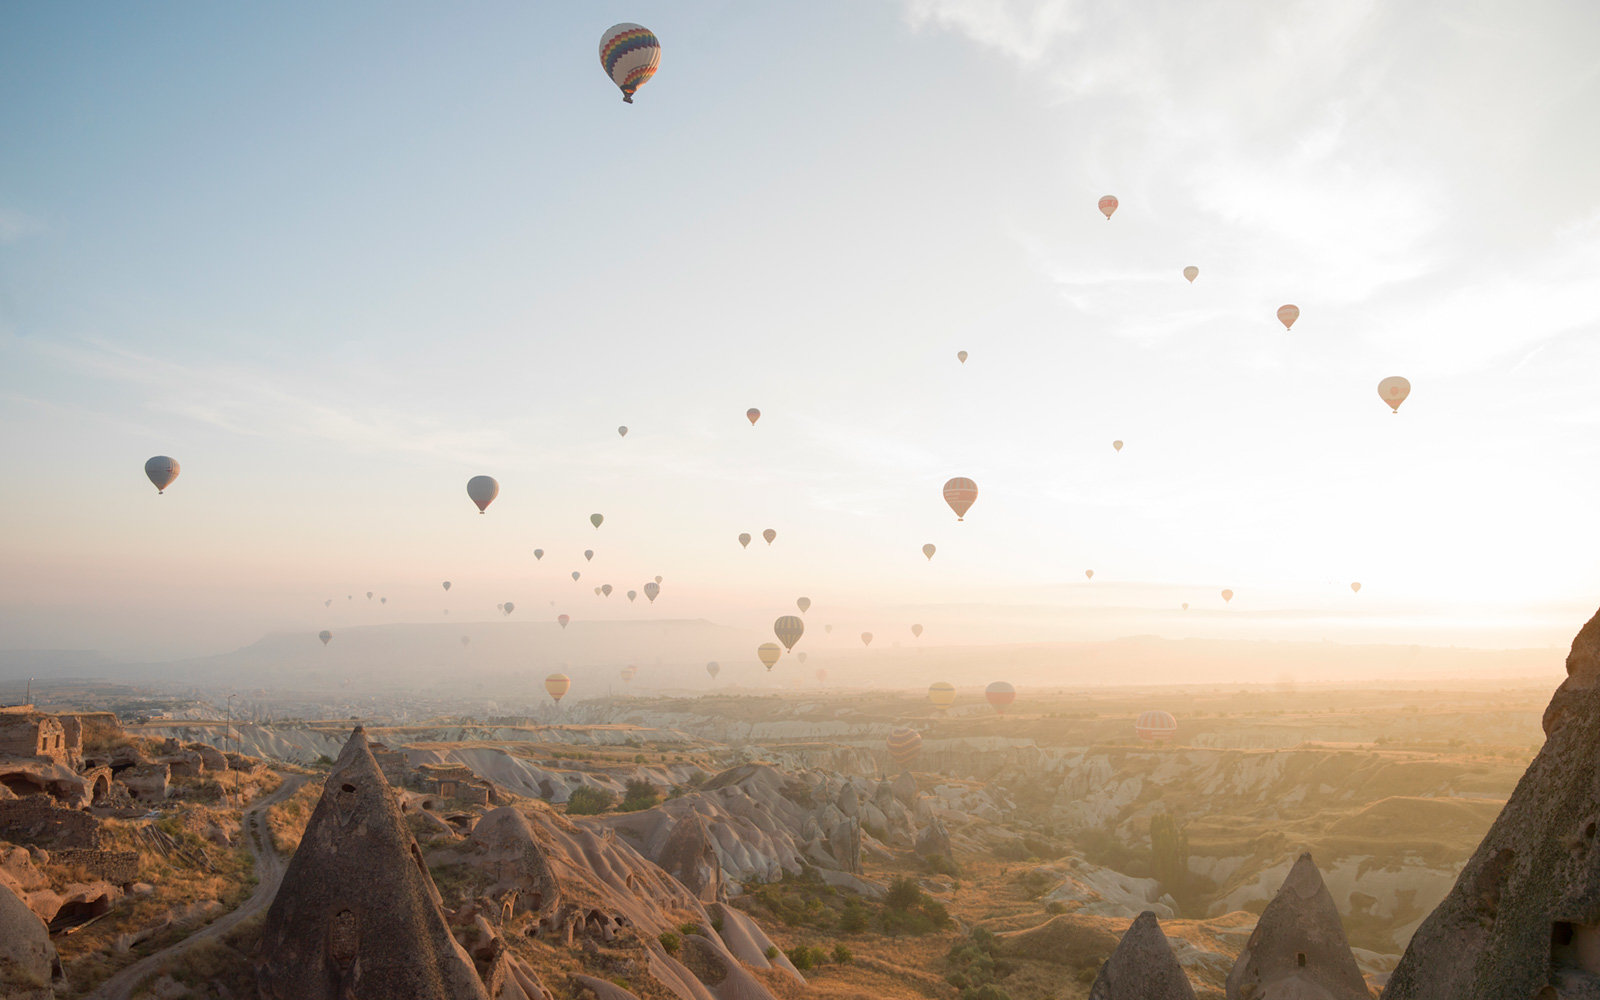 Hot Air Balloons, Desert Landscape, Cappadocia, Turkey